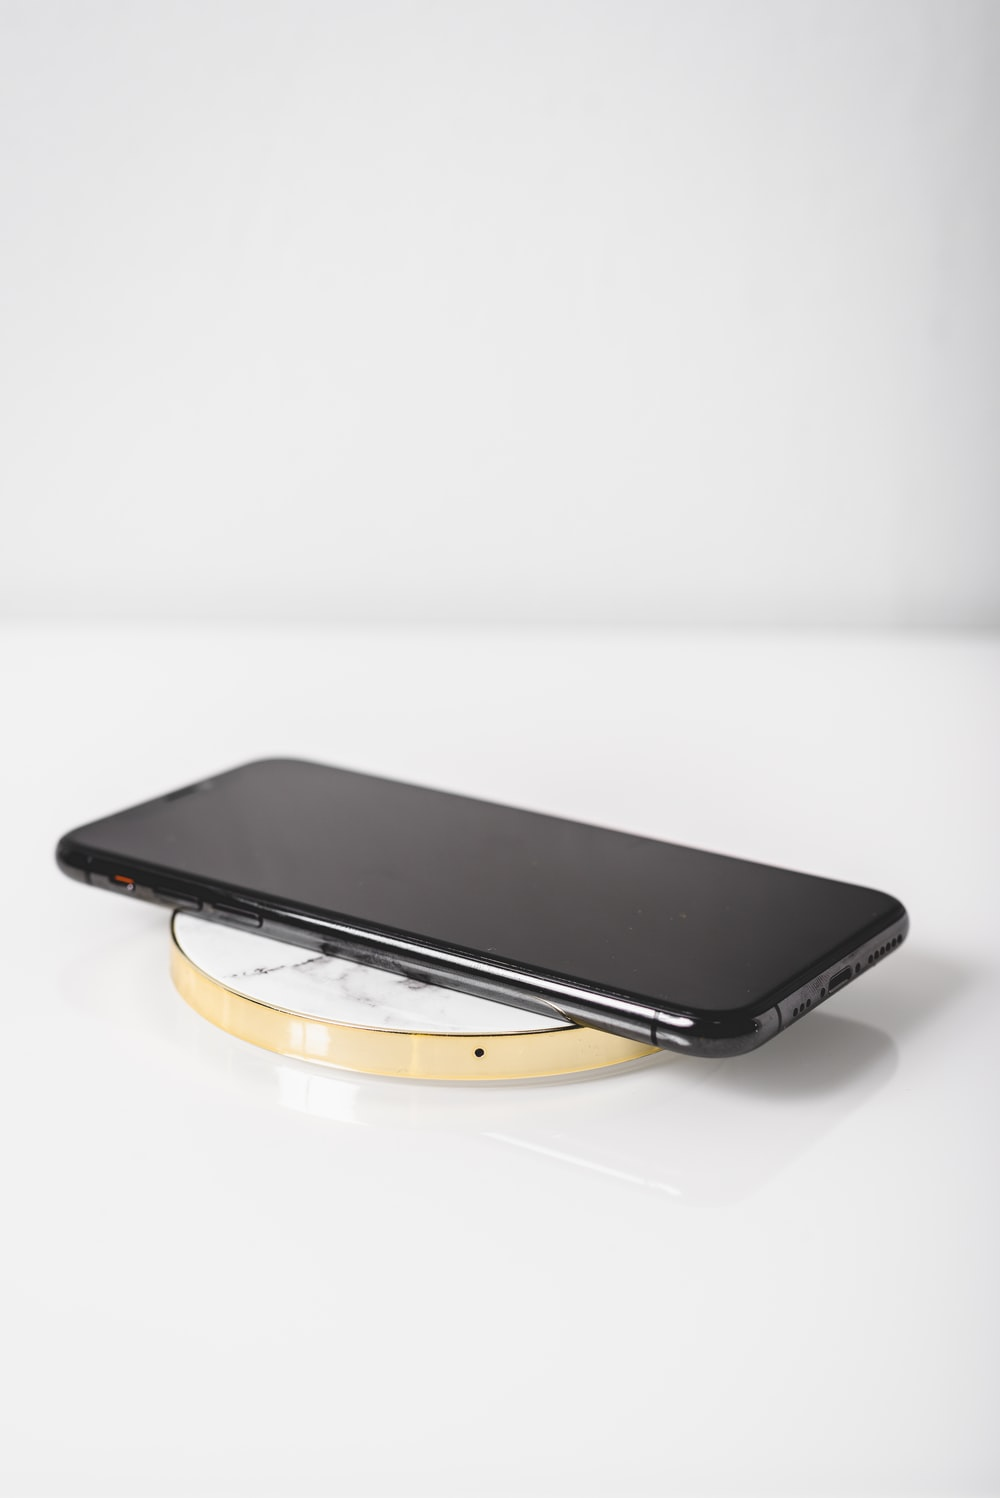 black android smartphone on white surface